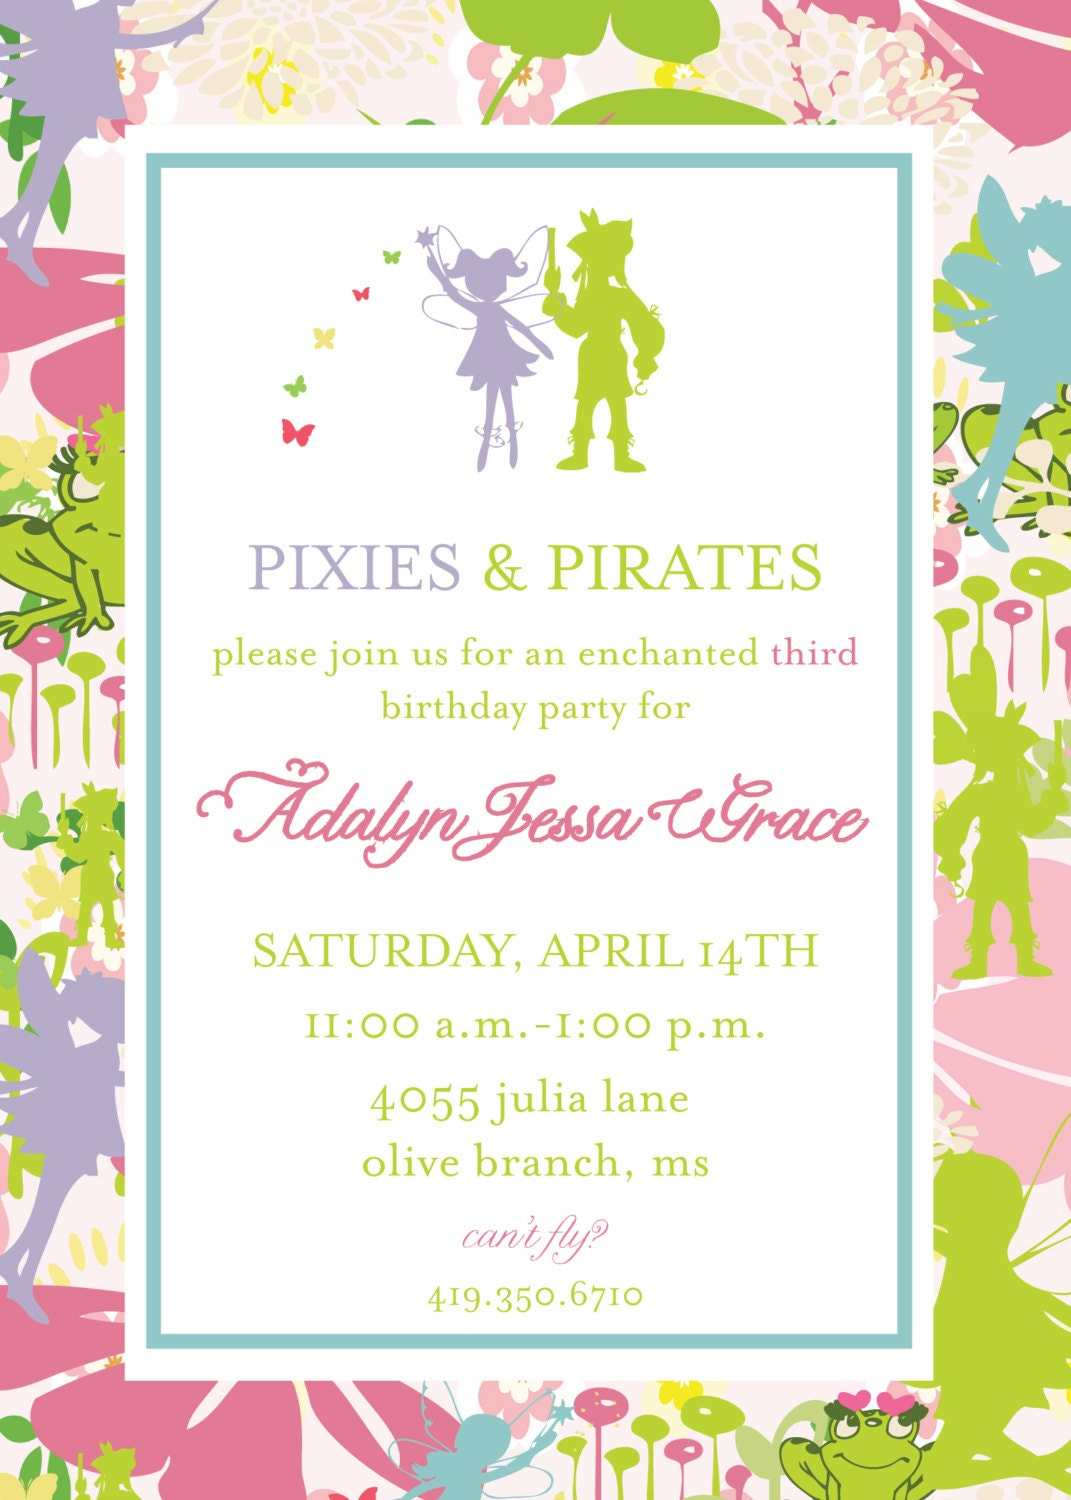 pixie and pirate invitation tinkerbell pixie and pirate invitation tinkerbell 128270zoom